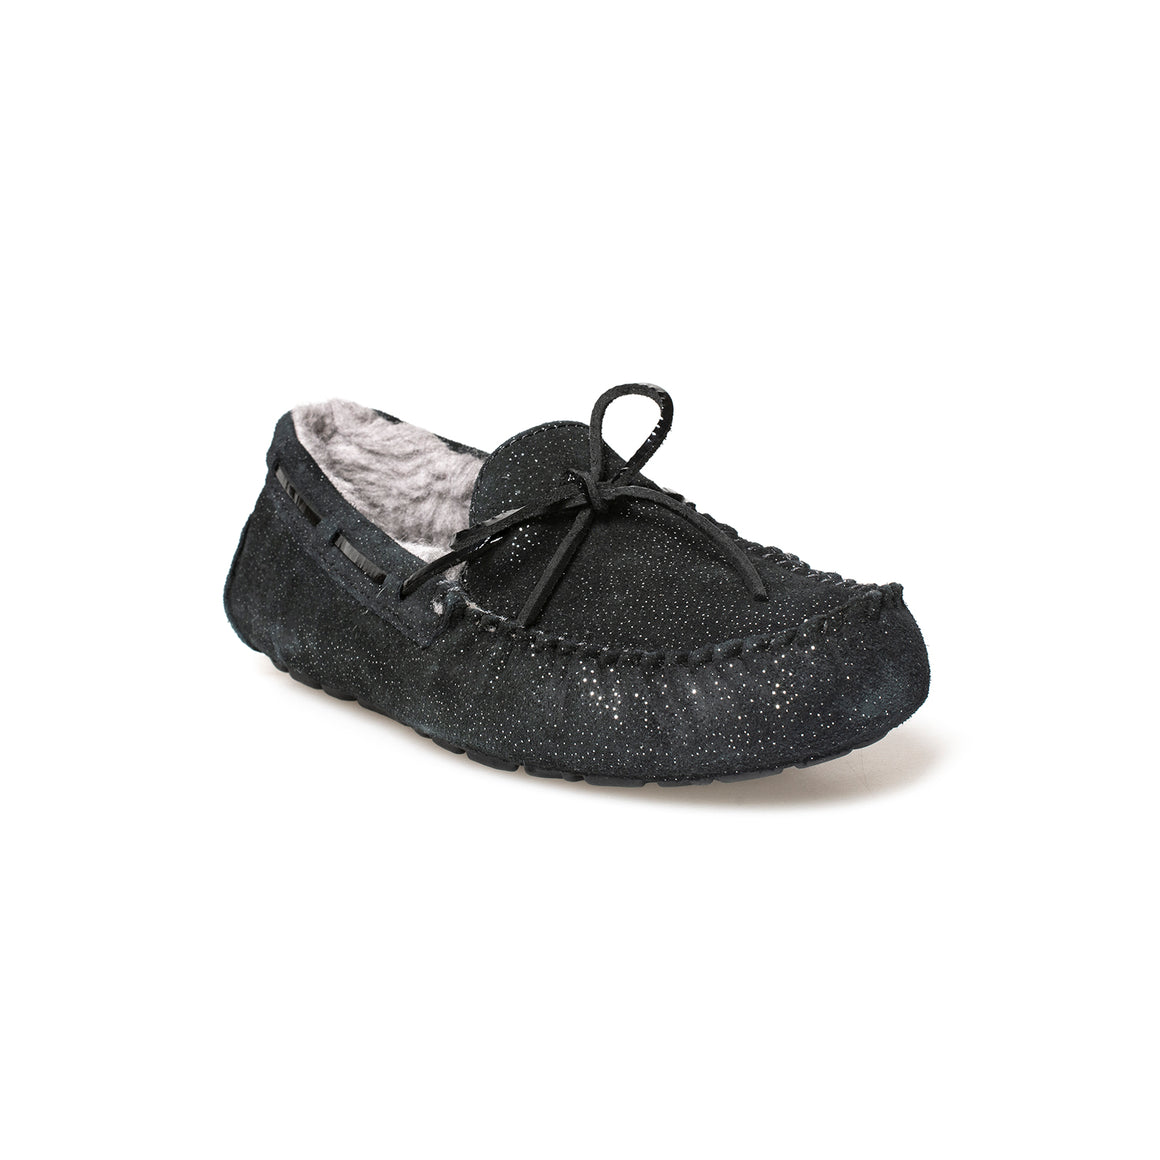 UGG Dakota Twinkle Black Slippers - Women's